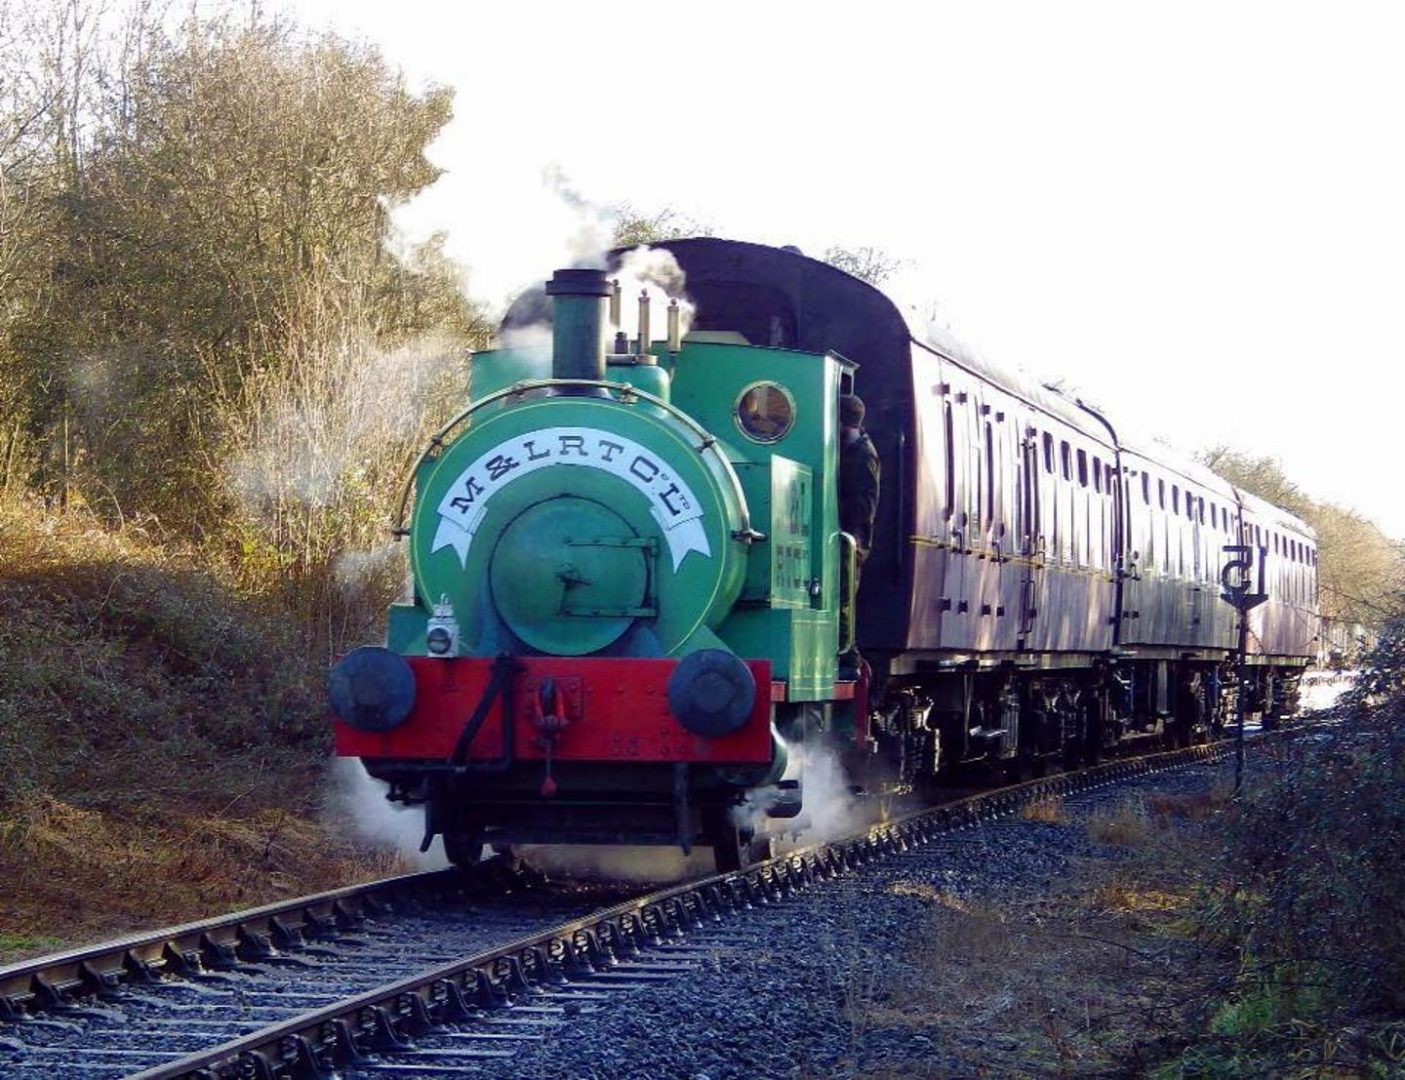 Train Engine For Sale >> Steam Locomotive Peckett 1555 Ivor The Engine Is Up For Sale